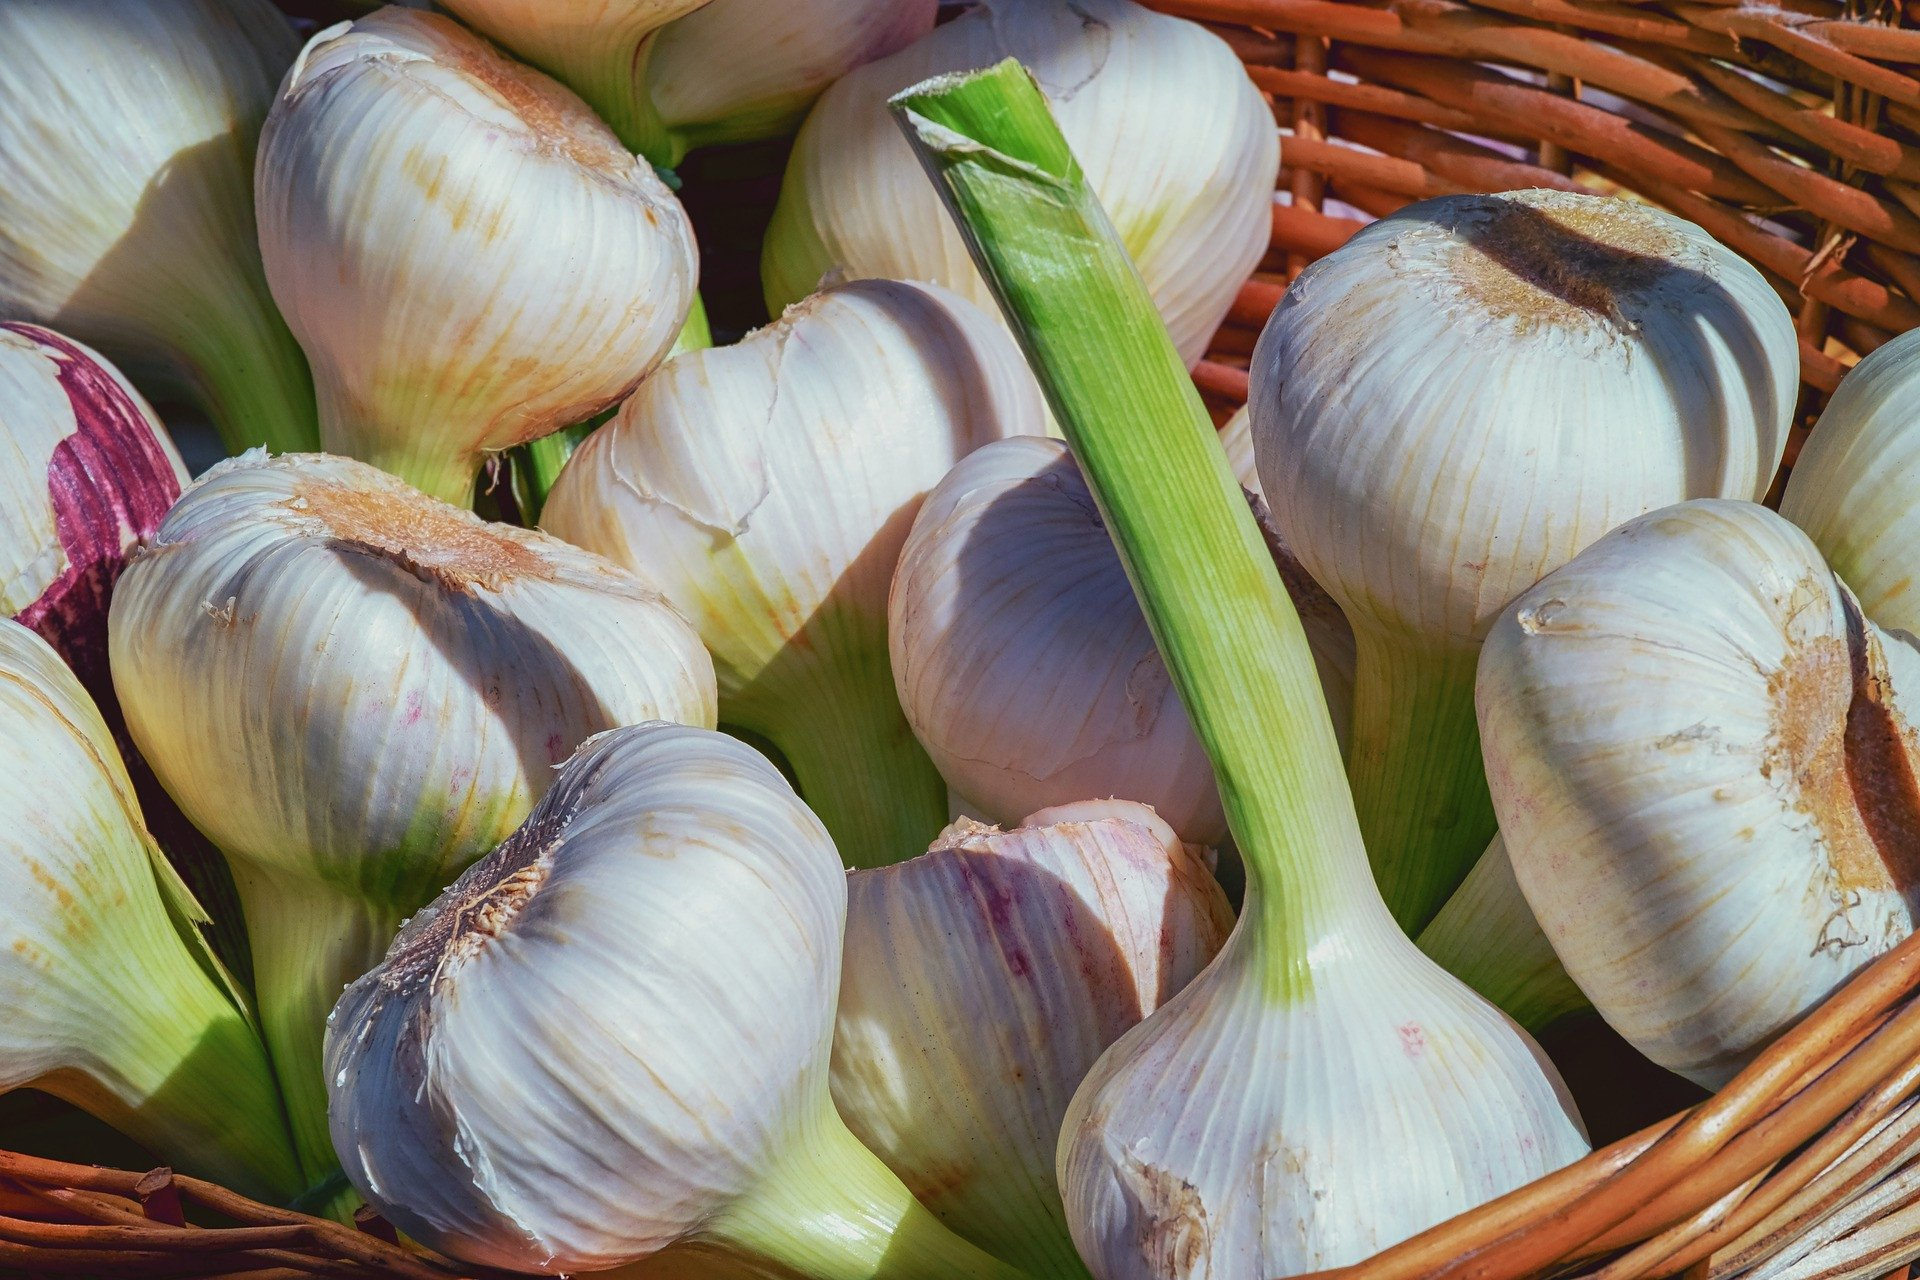 8 Benefits of Garlic for Men, One of which is to Increase Stamina - JPNN.com